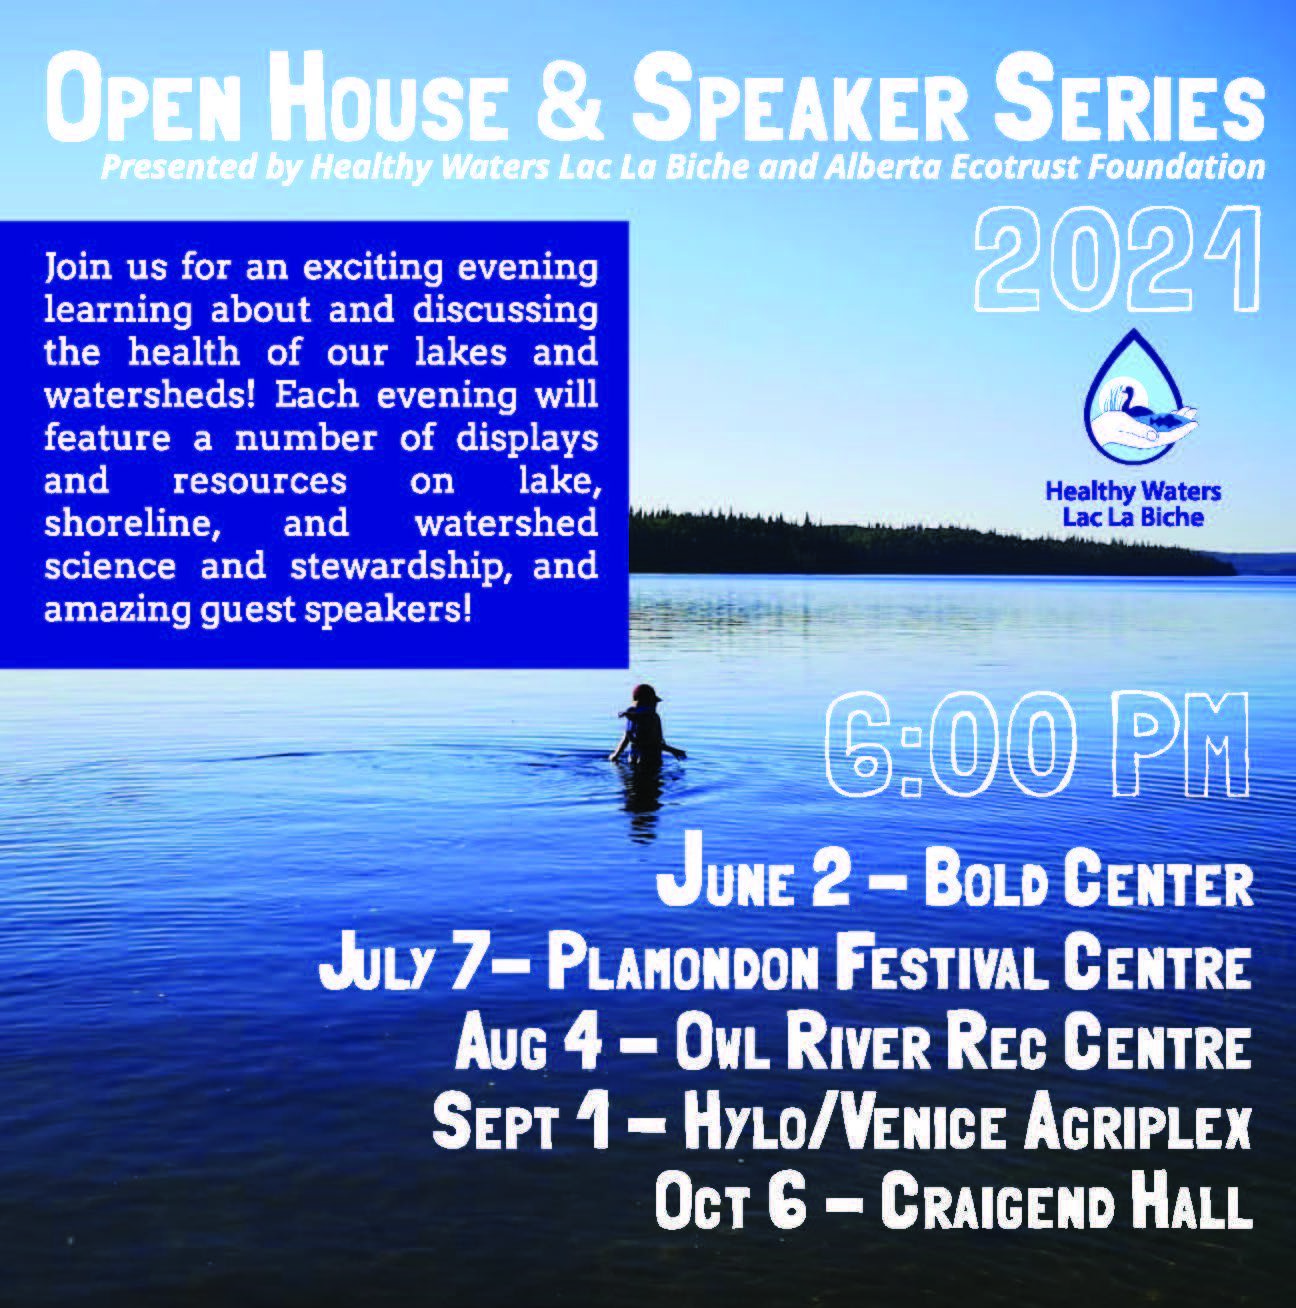 Healthy Waters Lac La Biche Open House and Speaker Series